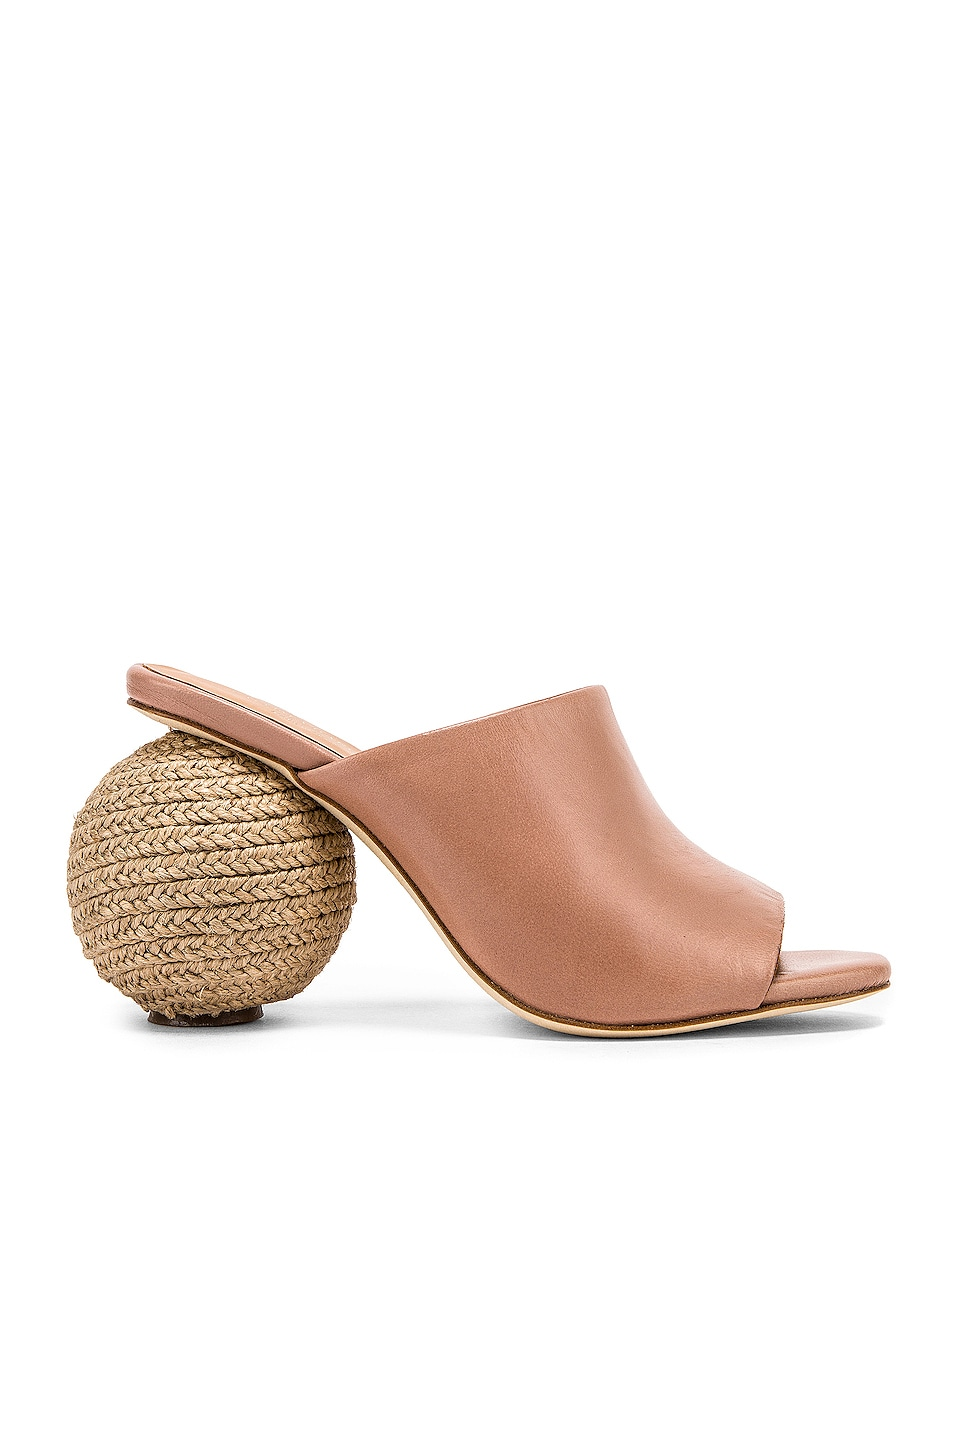 Paloma Barcelo Blanche Mule in Taupe